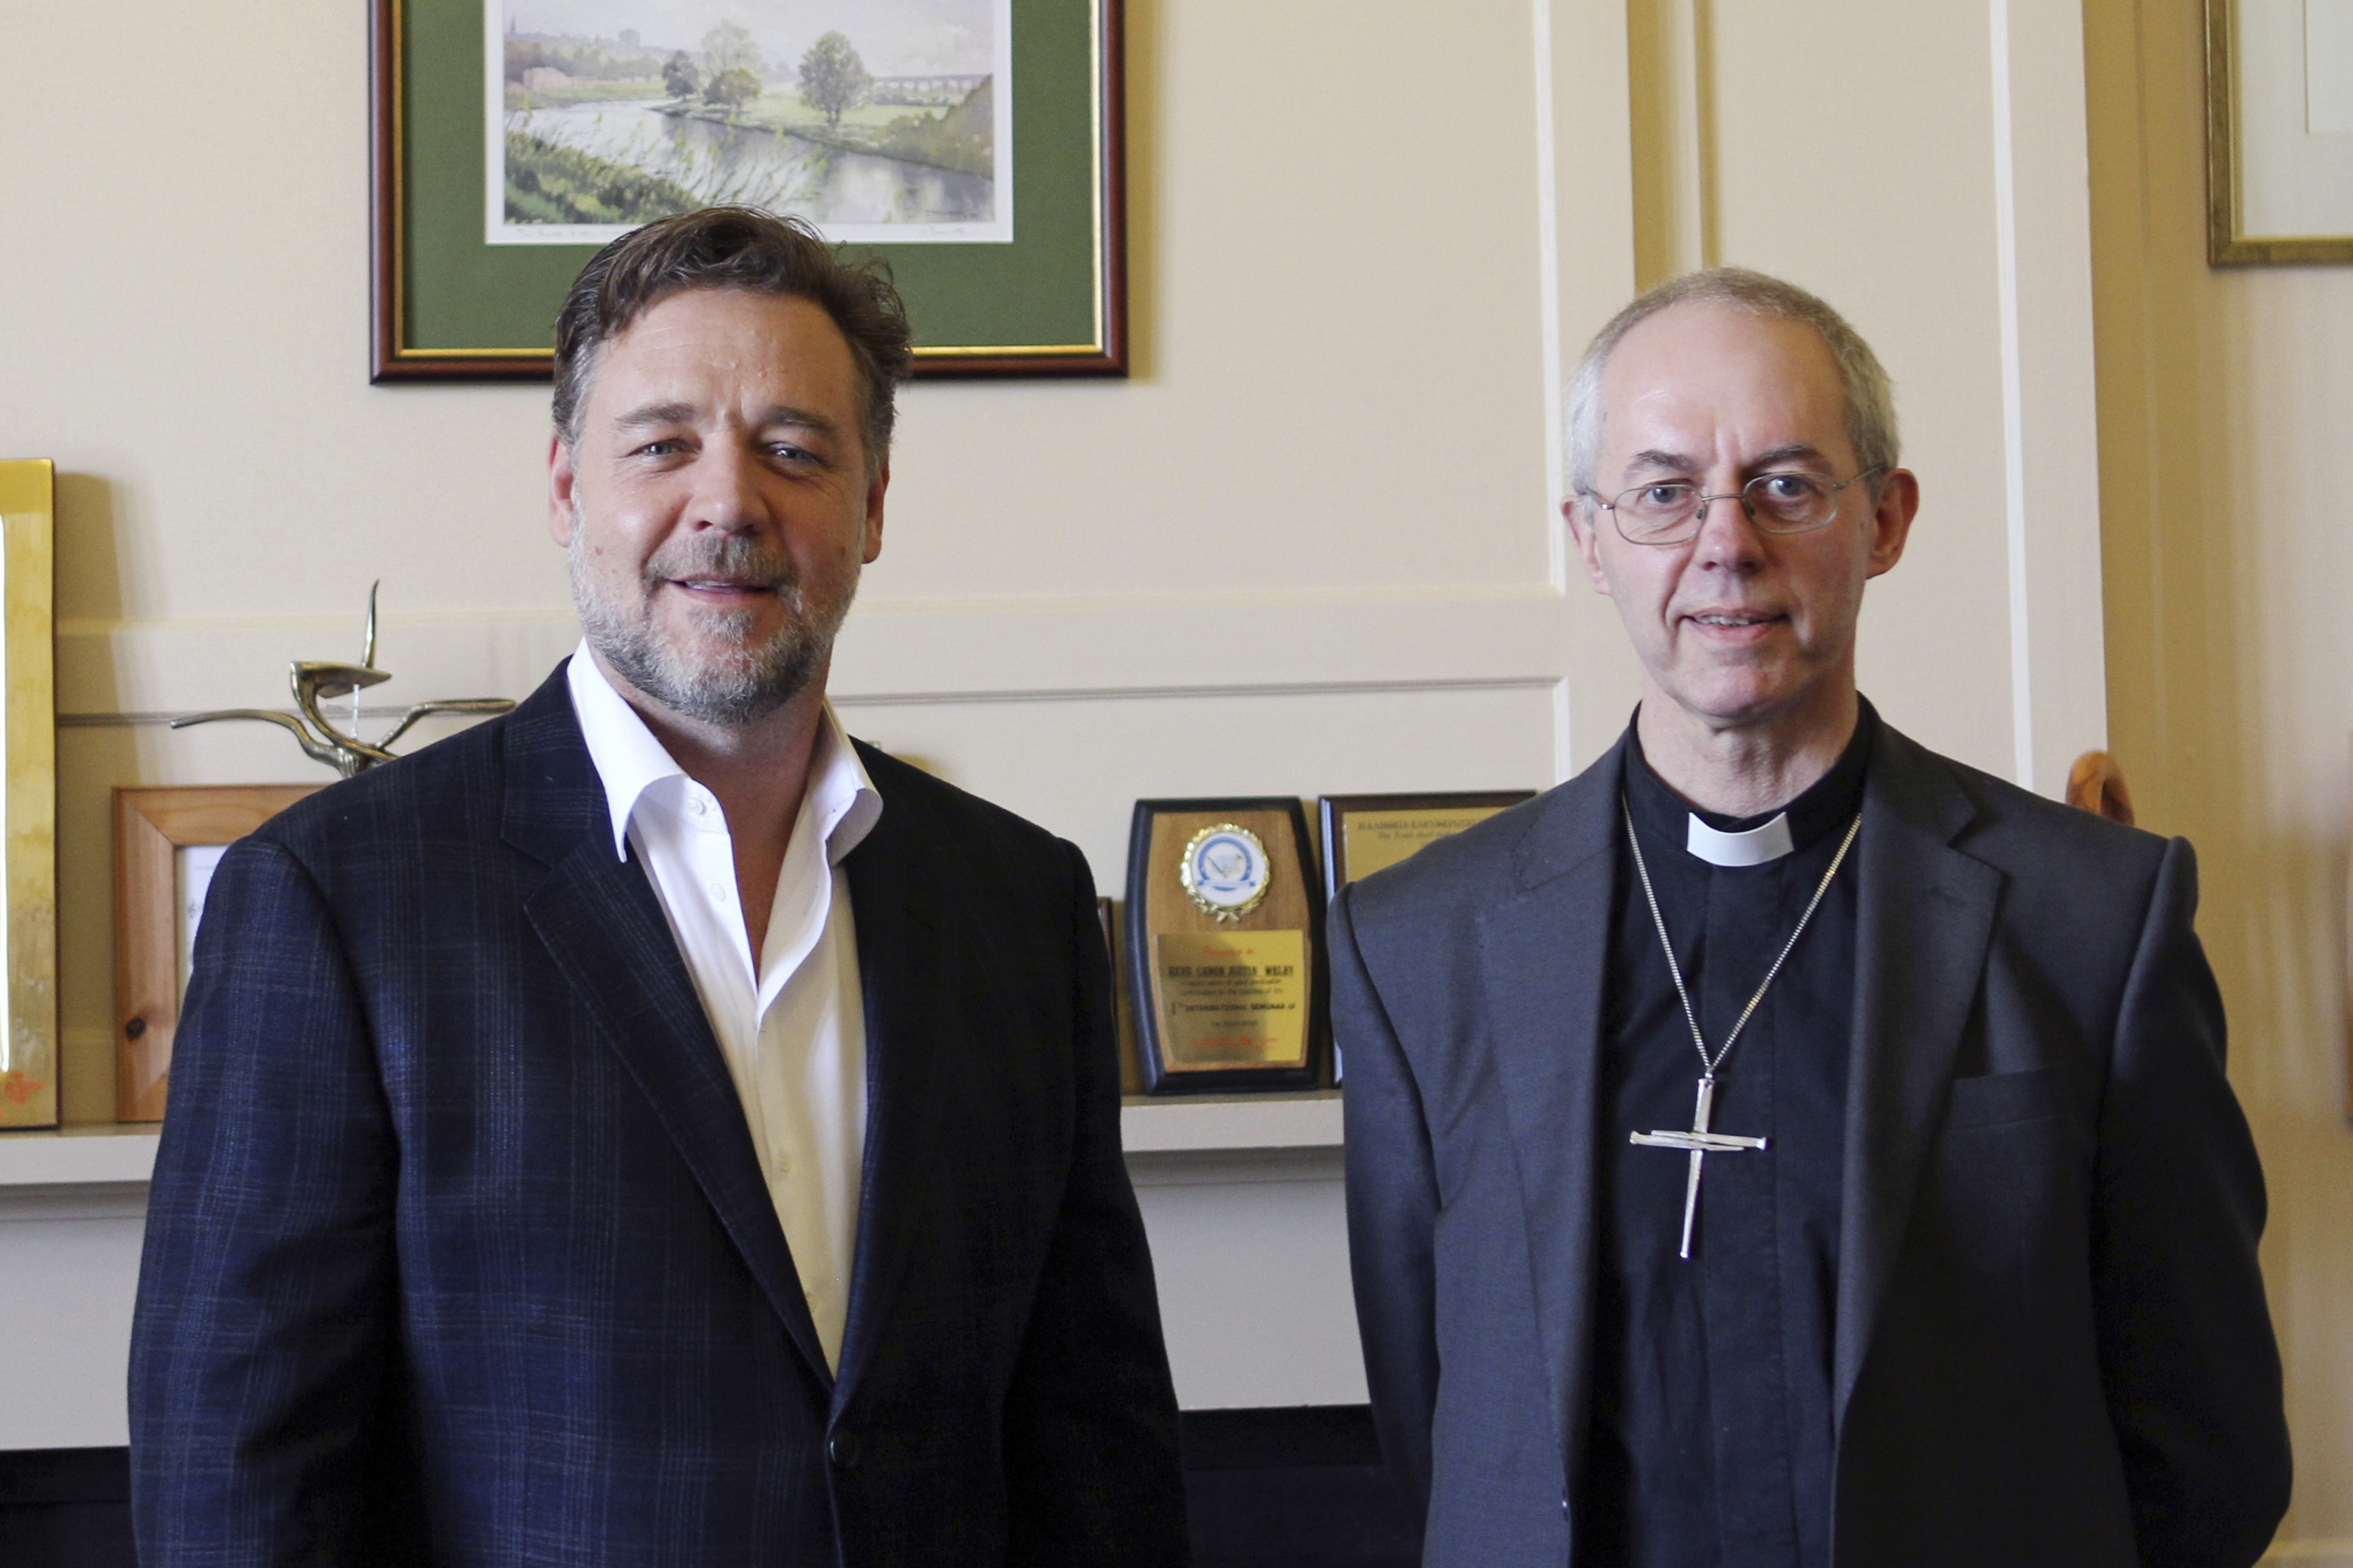 Actor Russell Crowe meets with Archbishop of Canterbury Justin Welby to discuss spirituality at Lambeth Palace in London Tuesday.